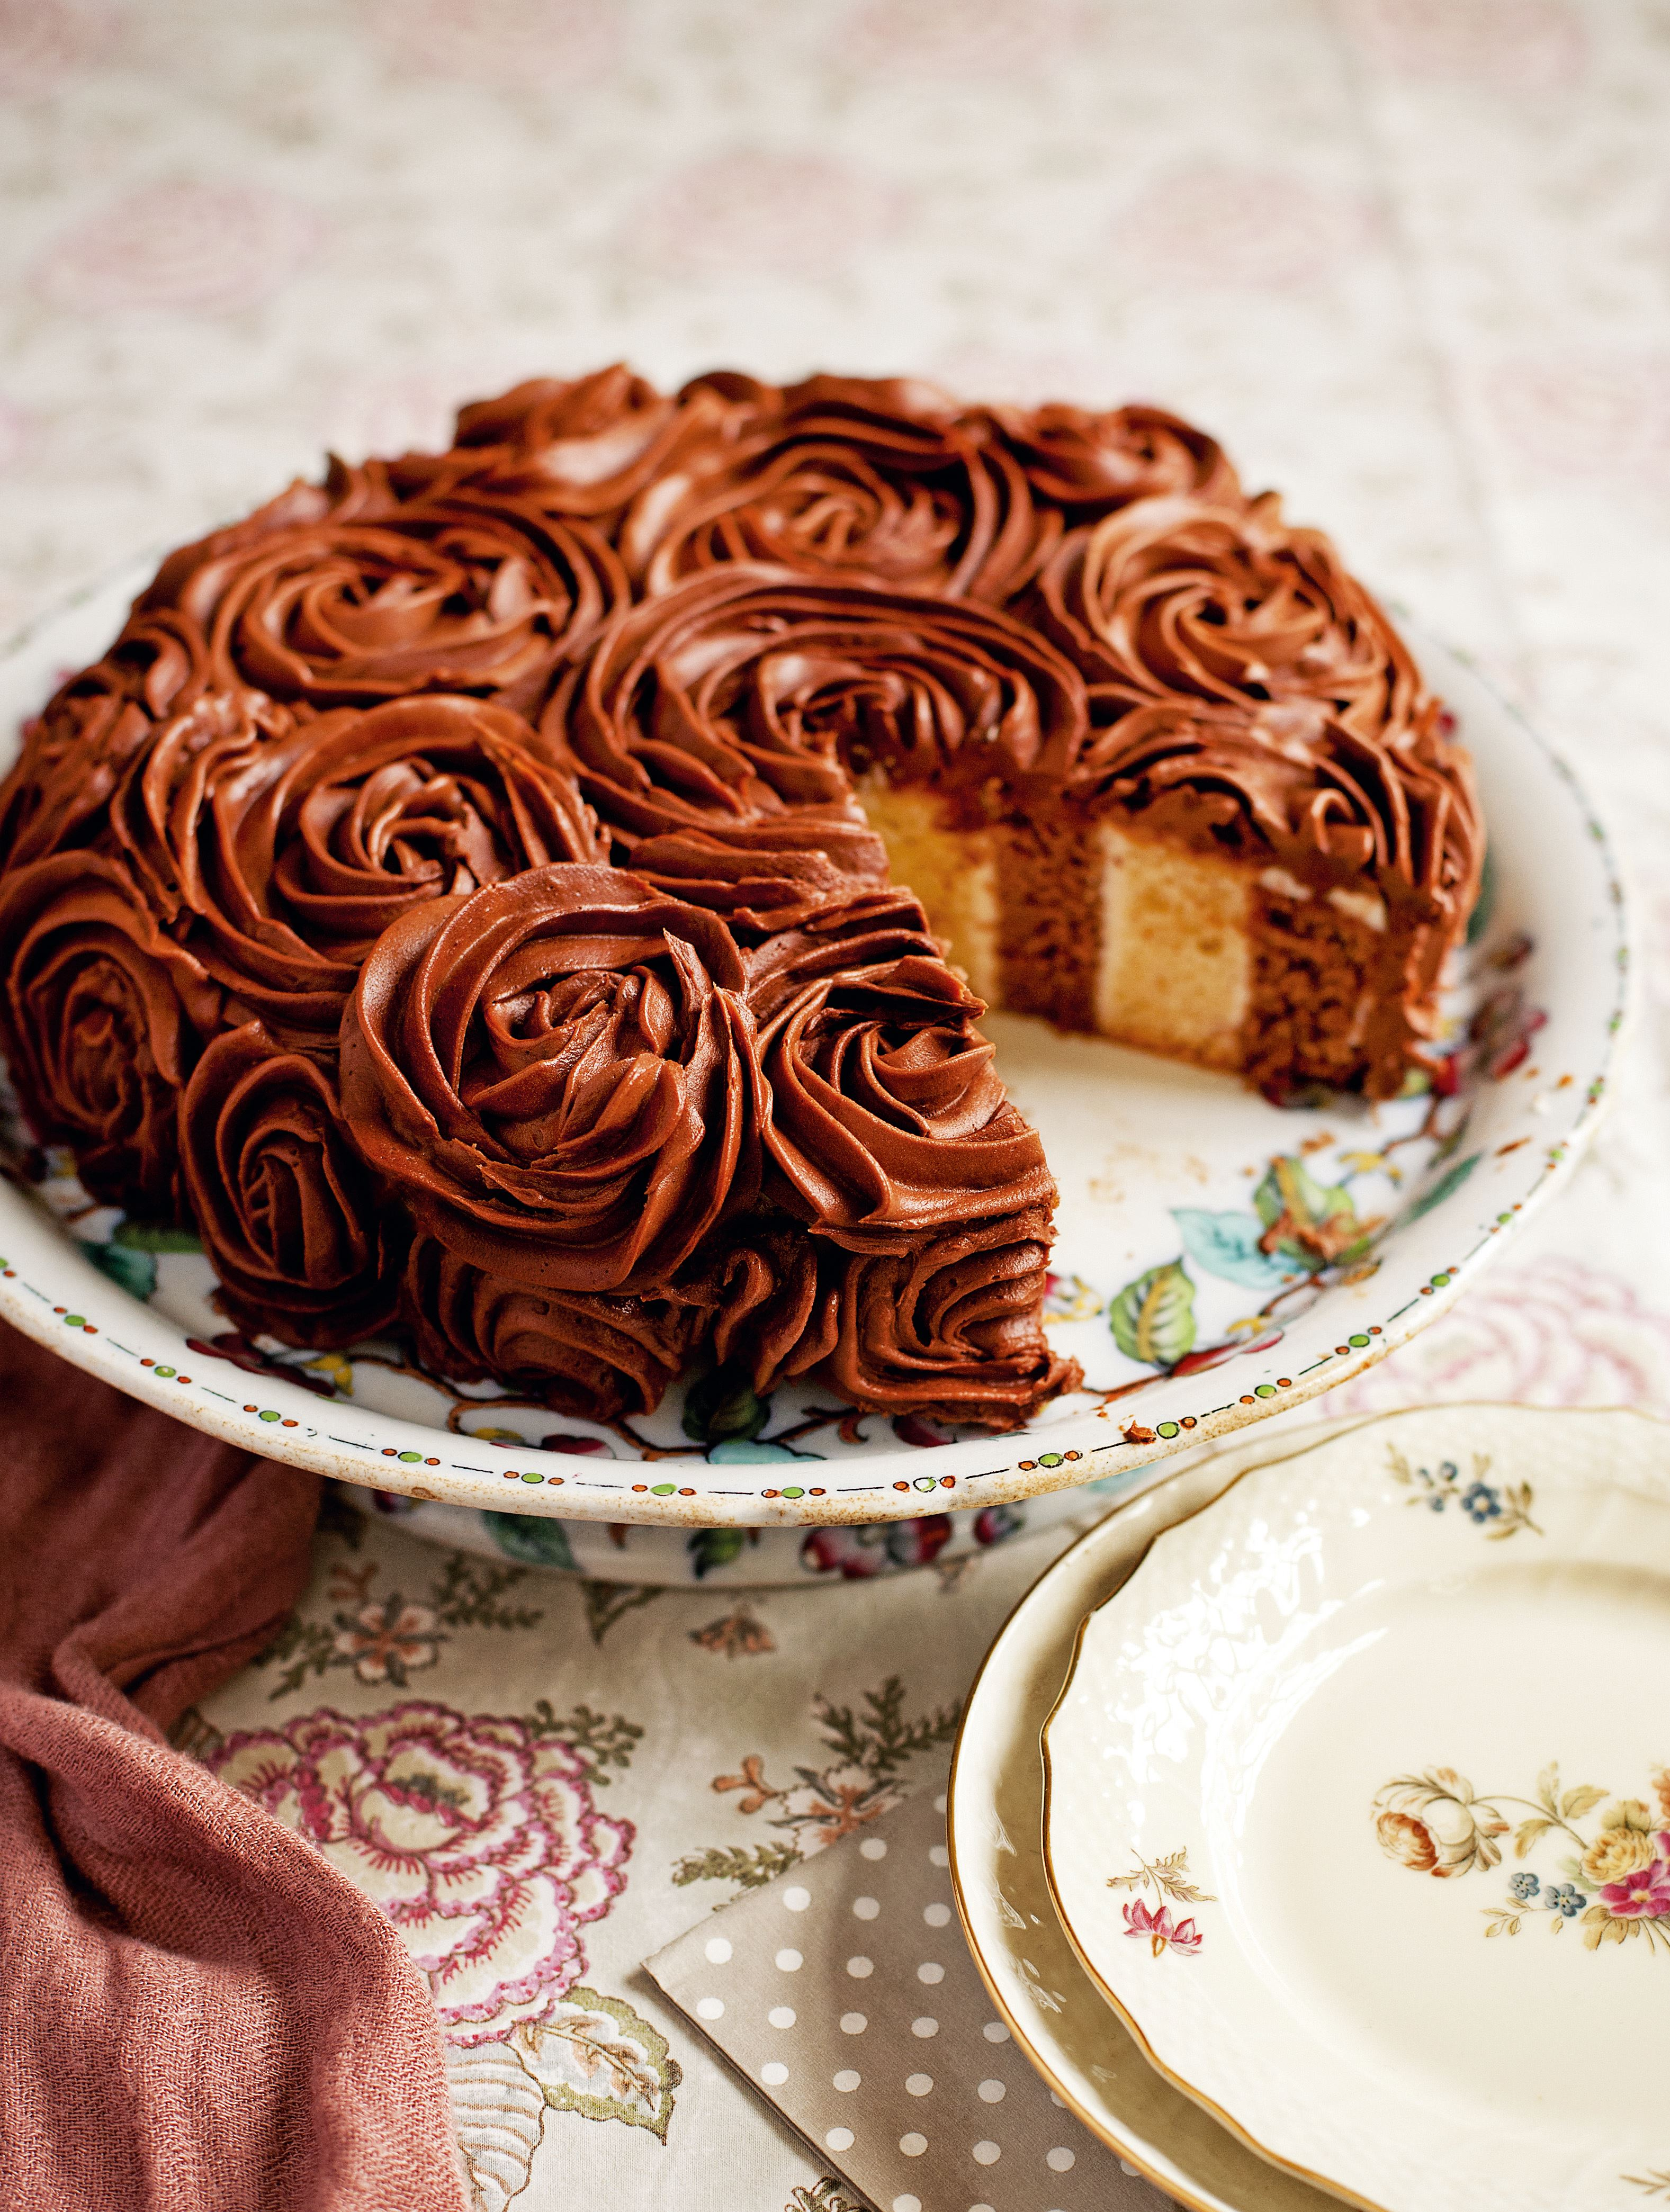 Coconut and chocolate stripy cake